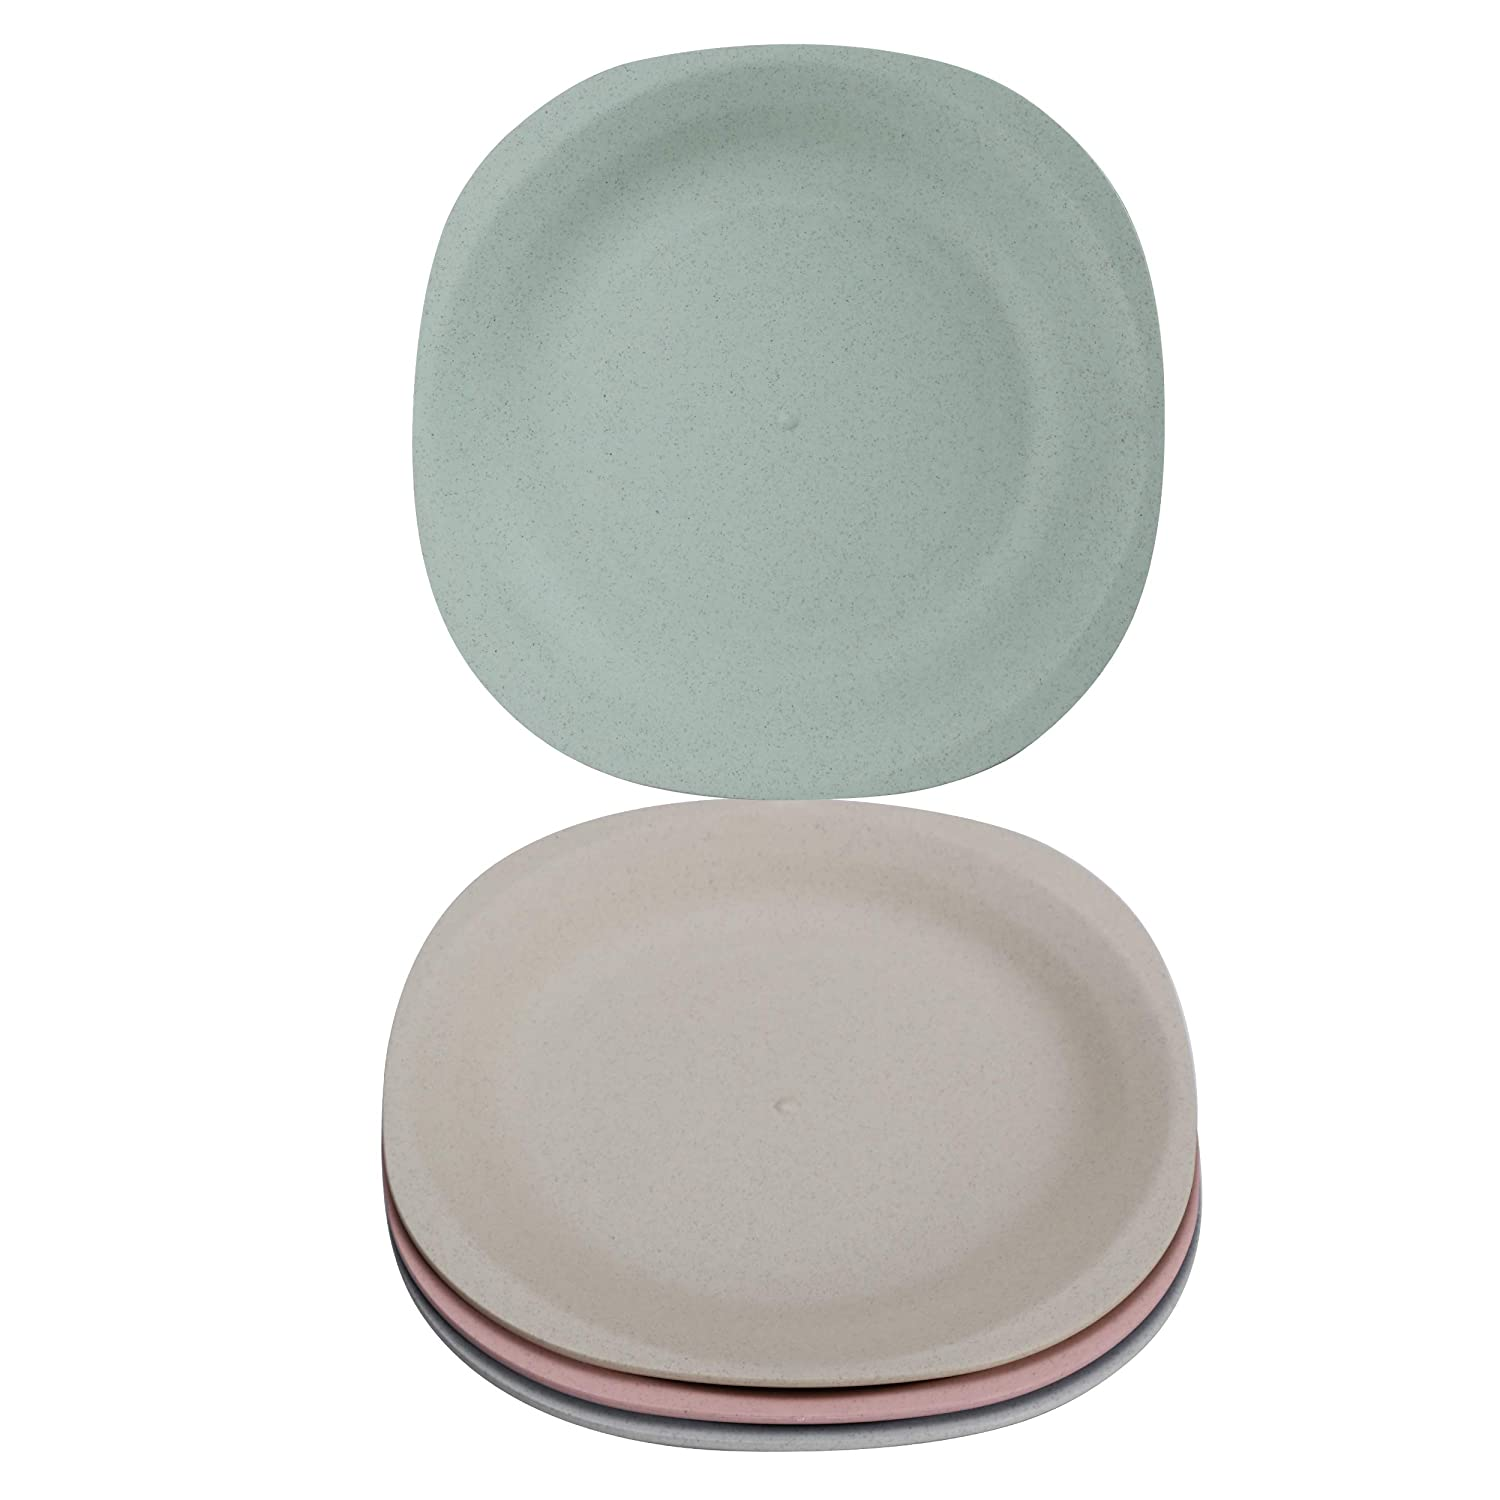 Brightbuy Wheat Straw Plates (4-pack) 7.28 inch, Unbreakable Non-Toxin Healthy Eco-Friendly Dishes, Dishwasher Microwave Safe Easy Clean Lunch Tableware Dinnerware Fruit Snack Containers